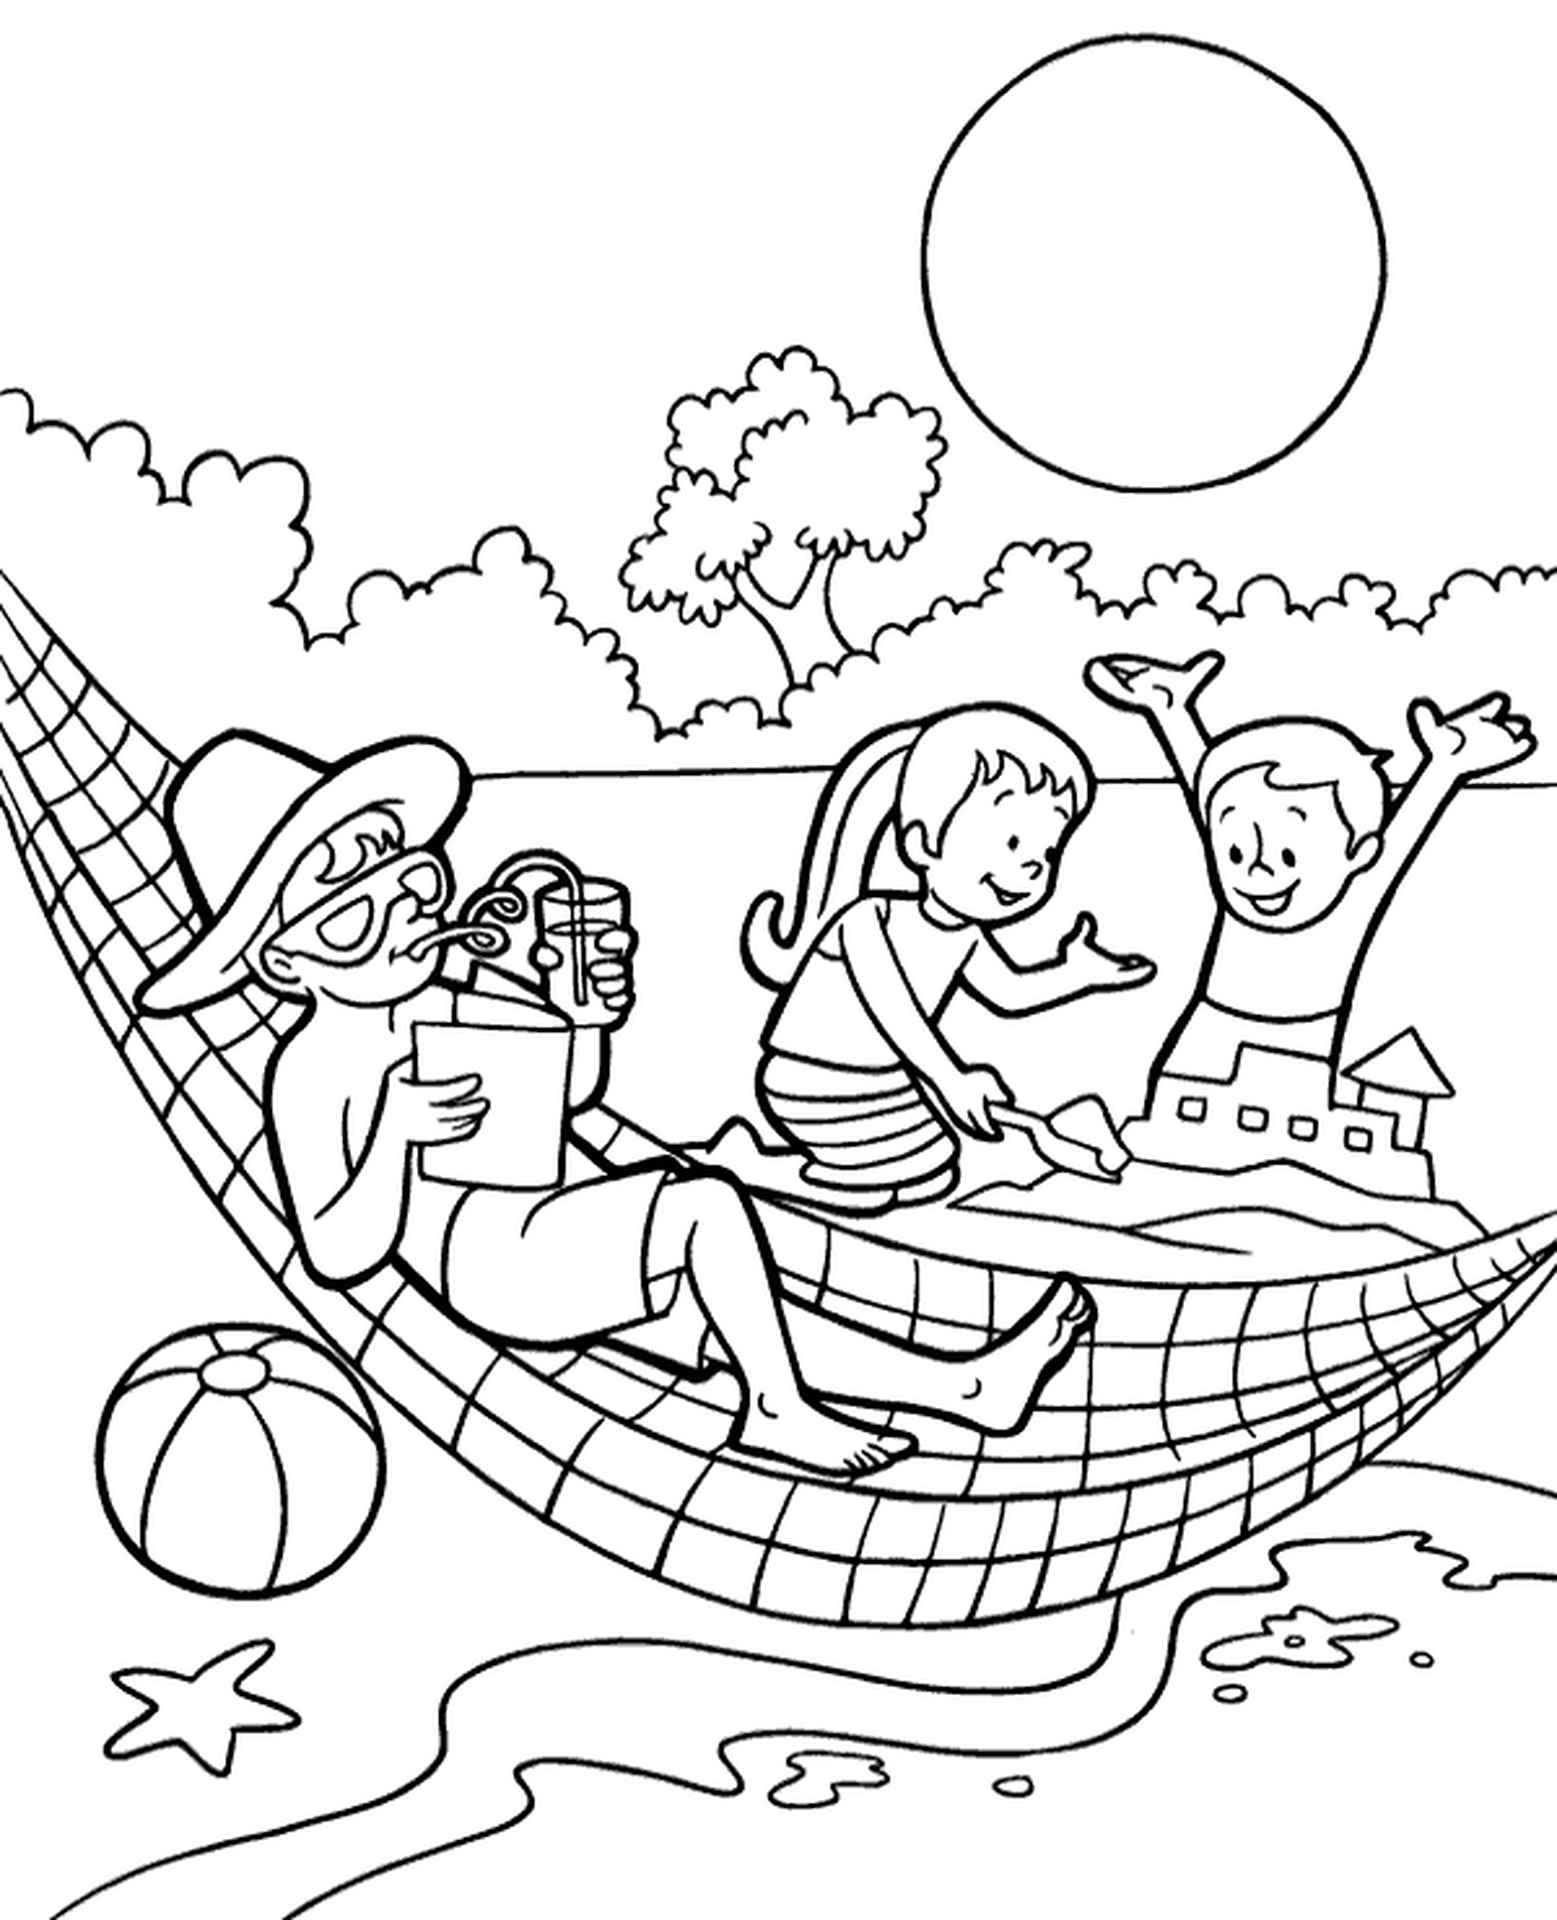 Summer Fun Coloring Page For Kids